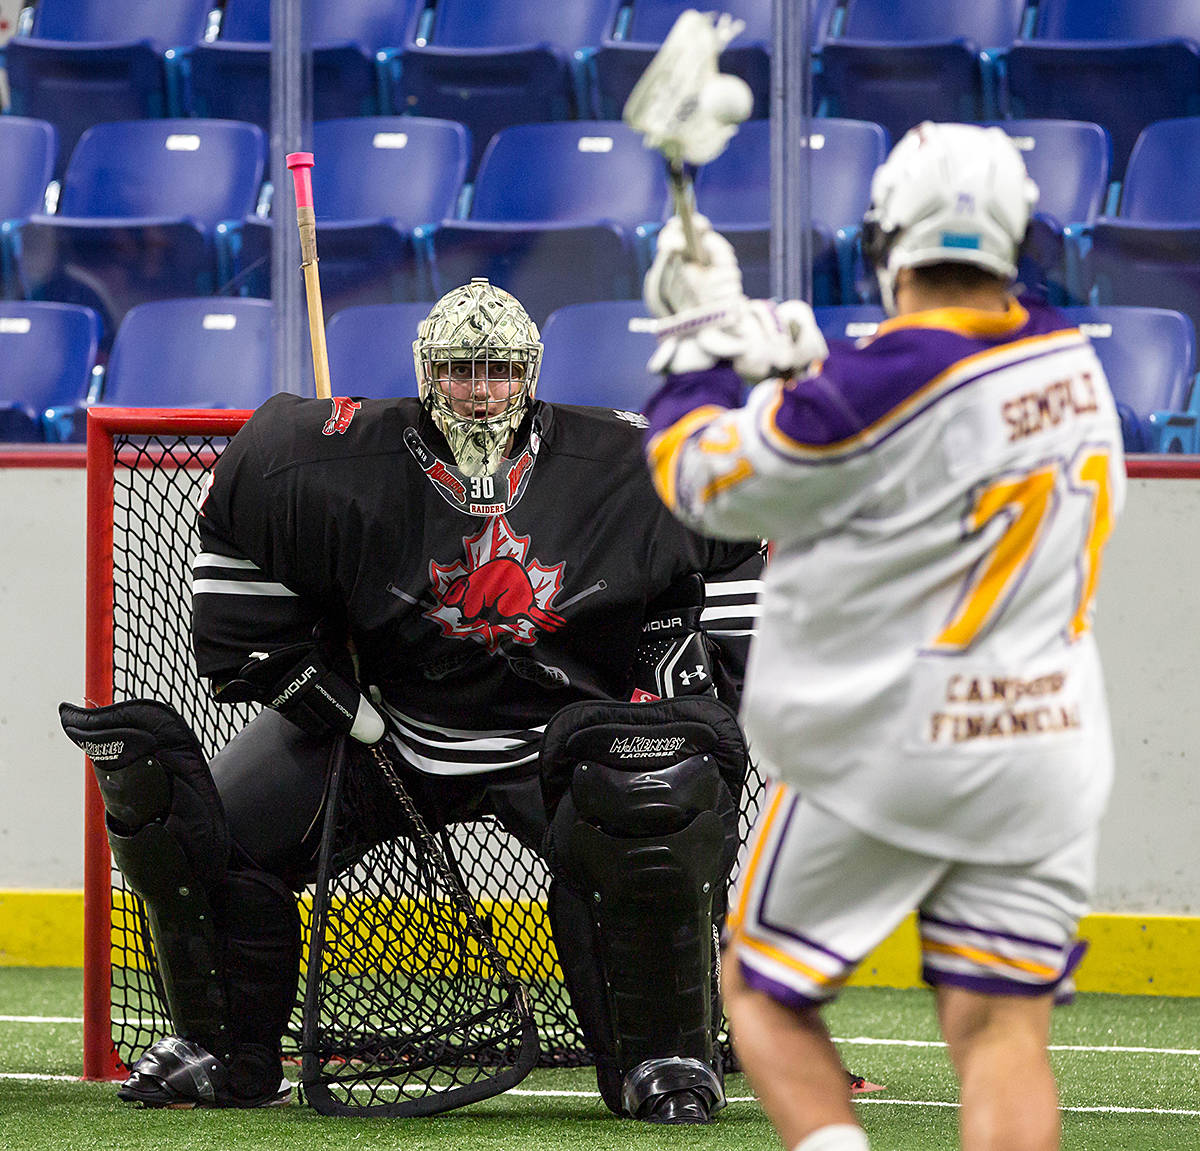 Minto Cup 2019 - Day 1 of action, including the opening ceremonies. (Garrett James/Langley Events Centre)